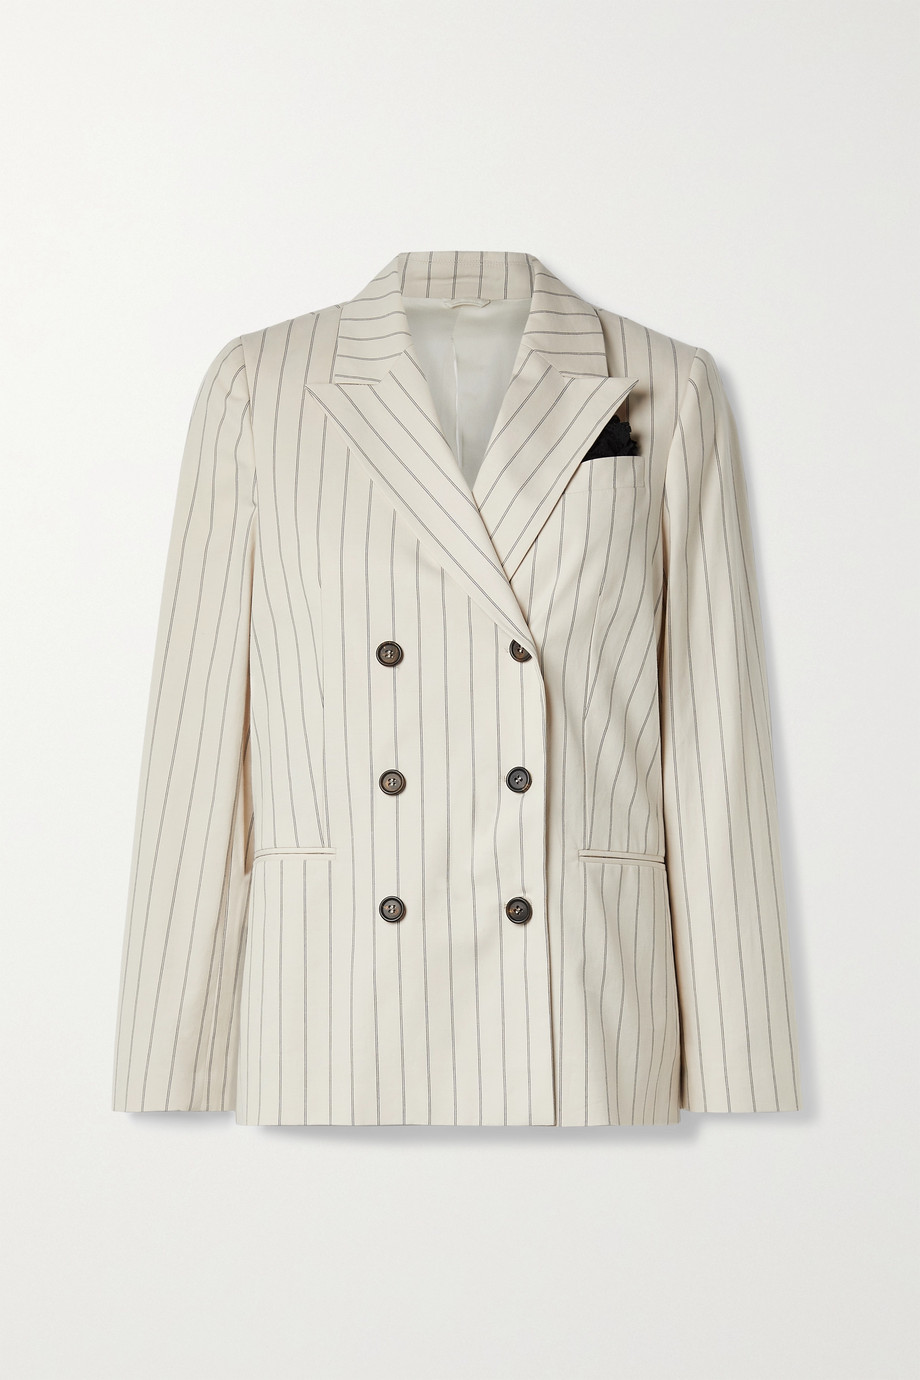 Brunello Cucinelli Regimental double-breasted pinstriped cotton-blend blazer